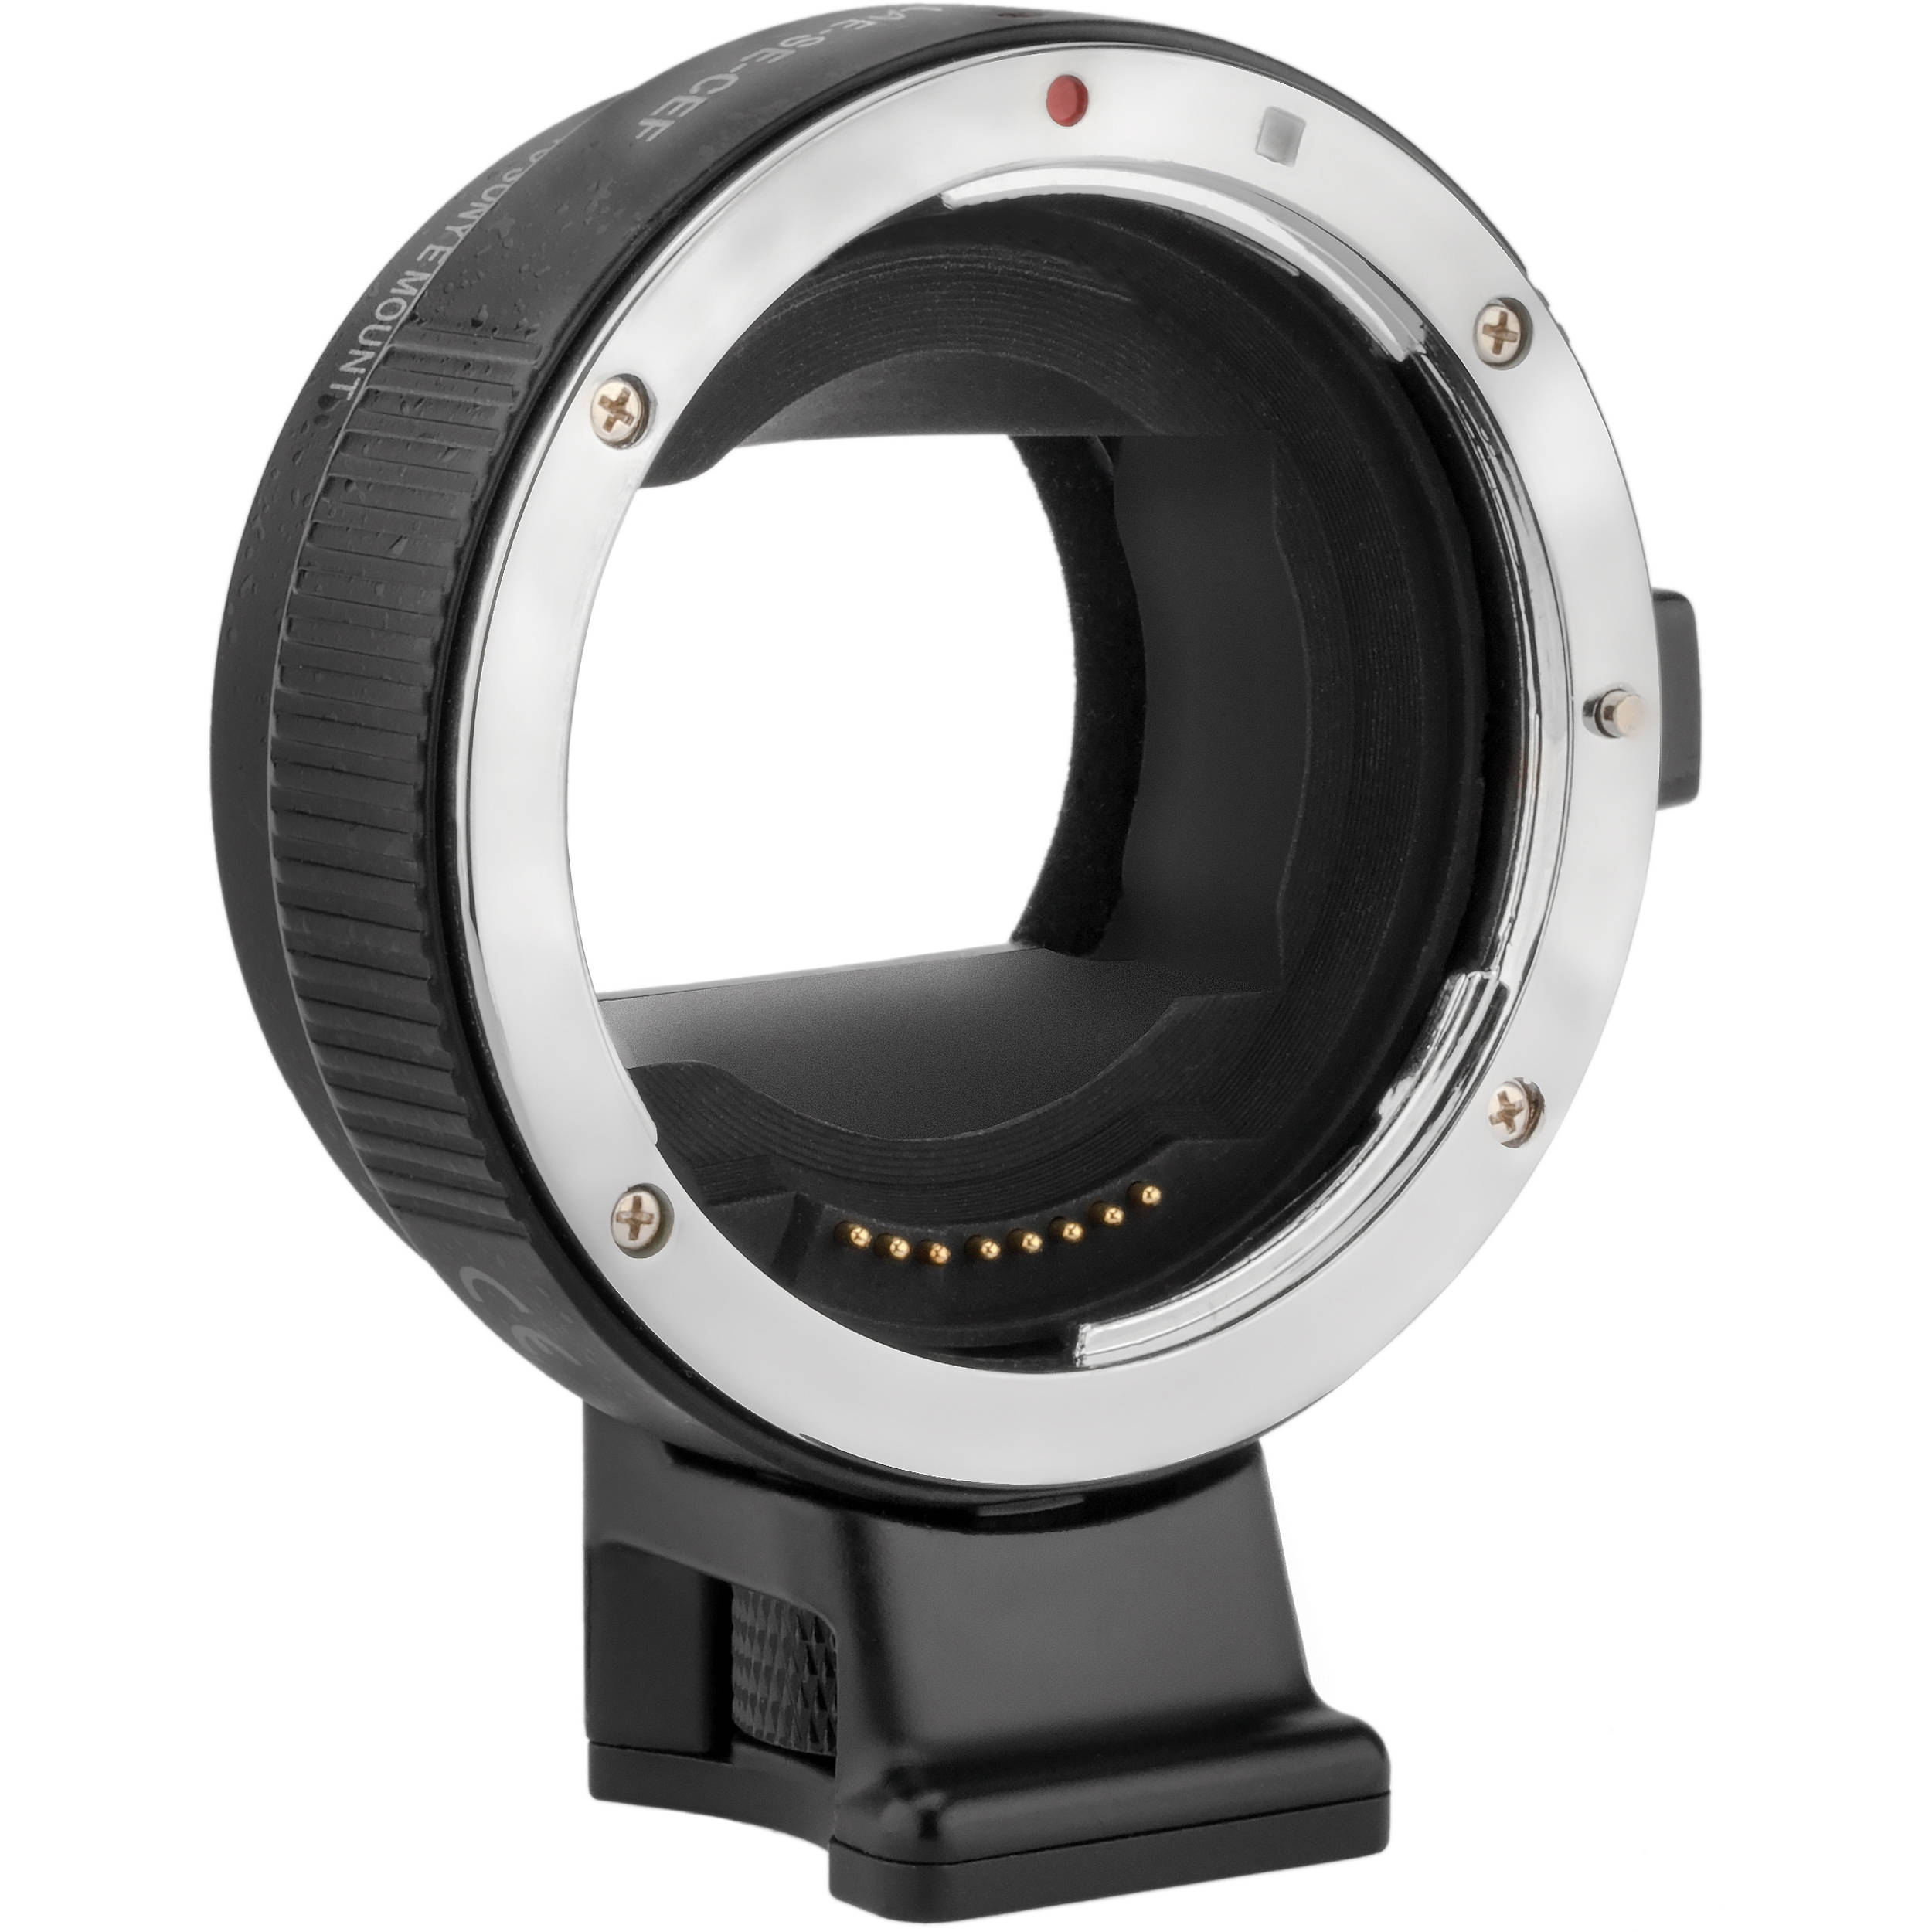 Lens Mount Adapters Bh Photo Video Kipon Nikon G To Leica Sl Camera Adapter Vello Canon Ef S Sony E Auto